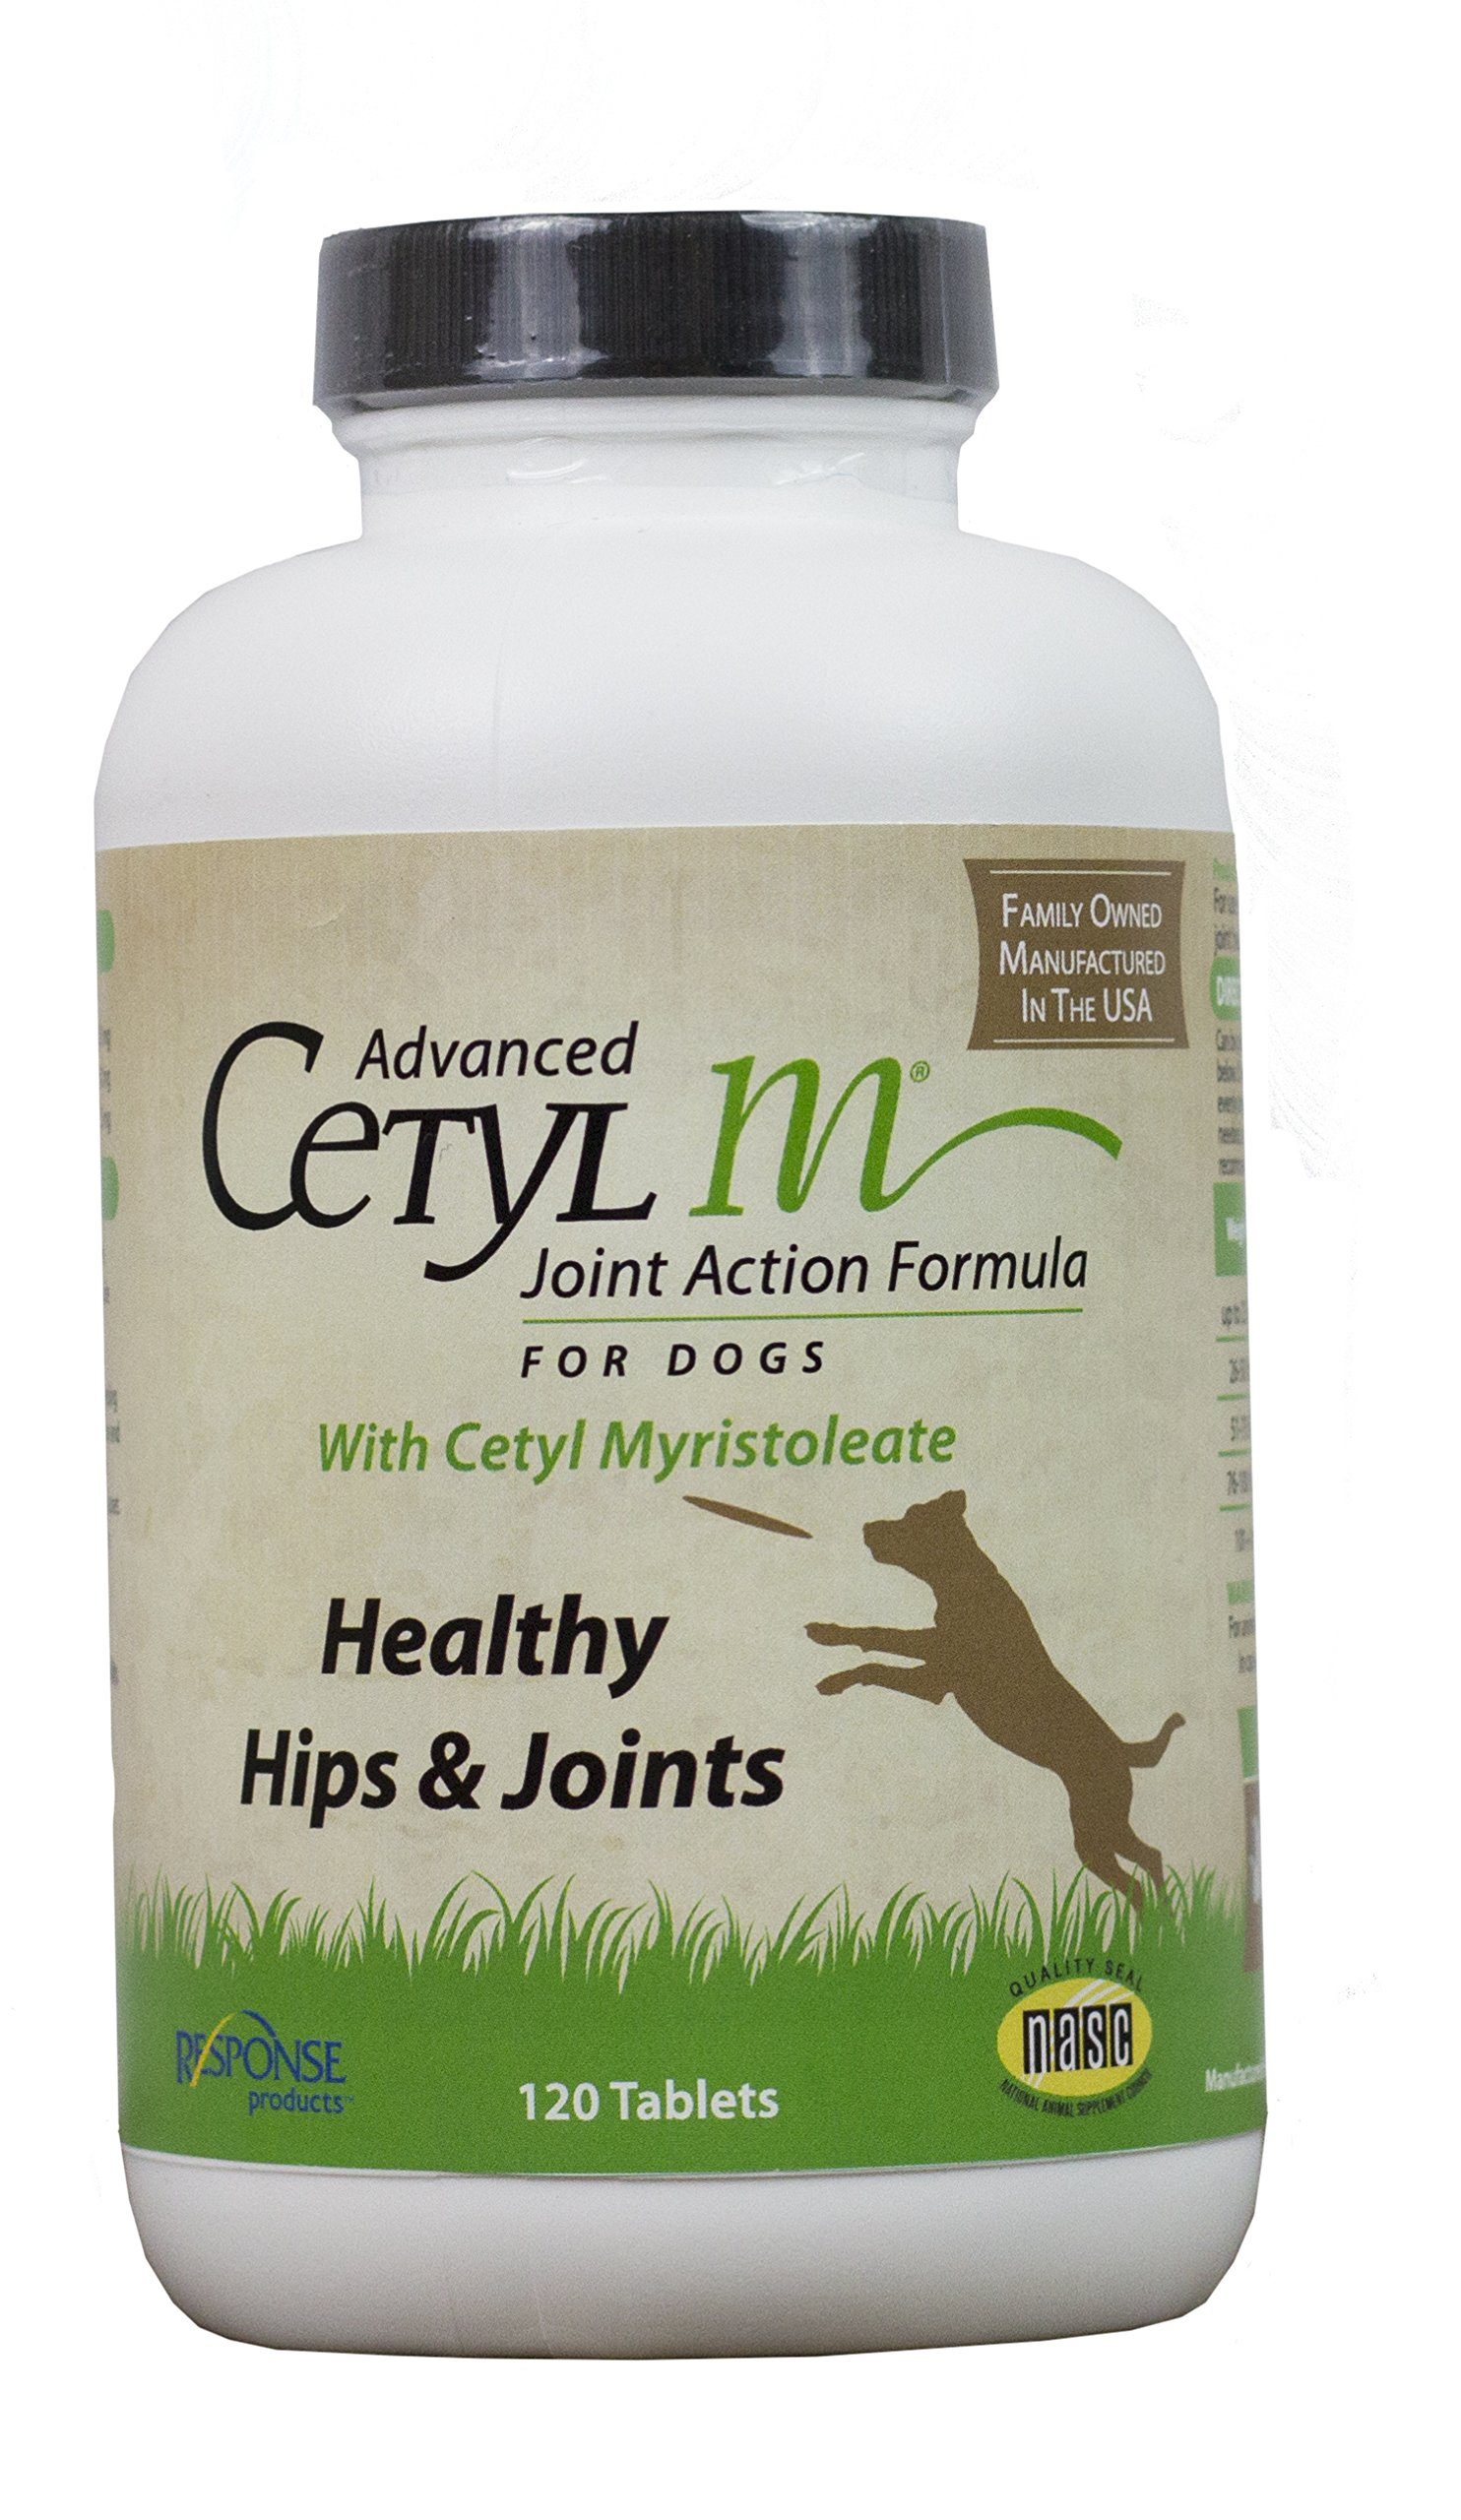 Cetyl M Joint Action Formula for Dogs 120 Count